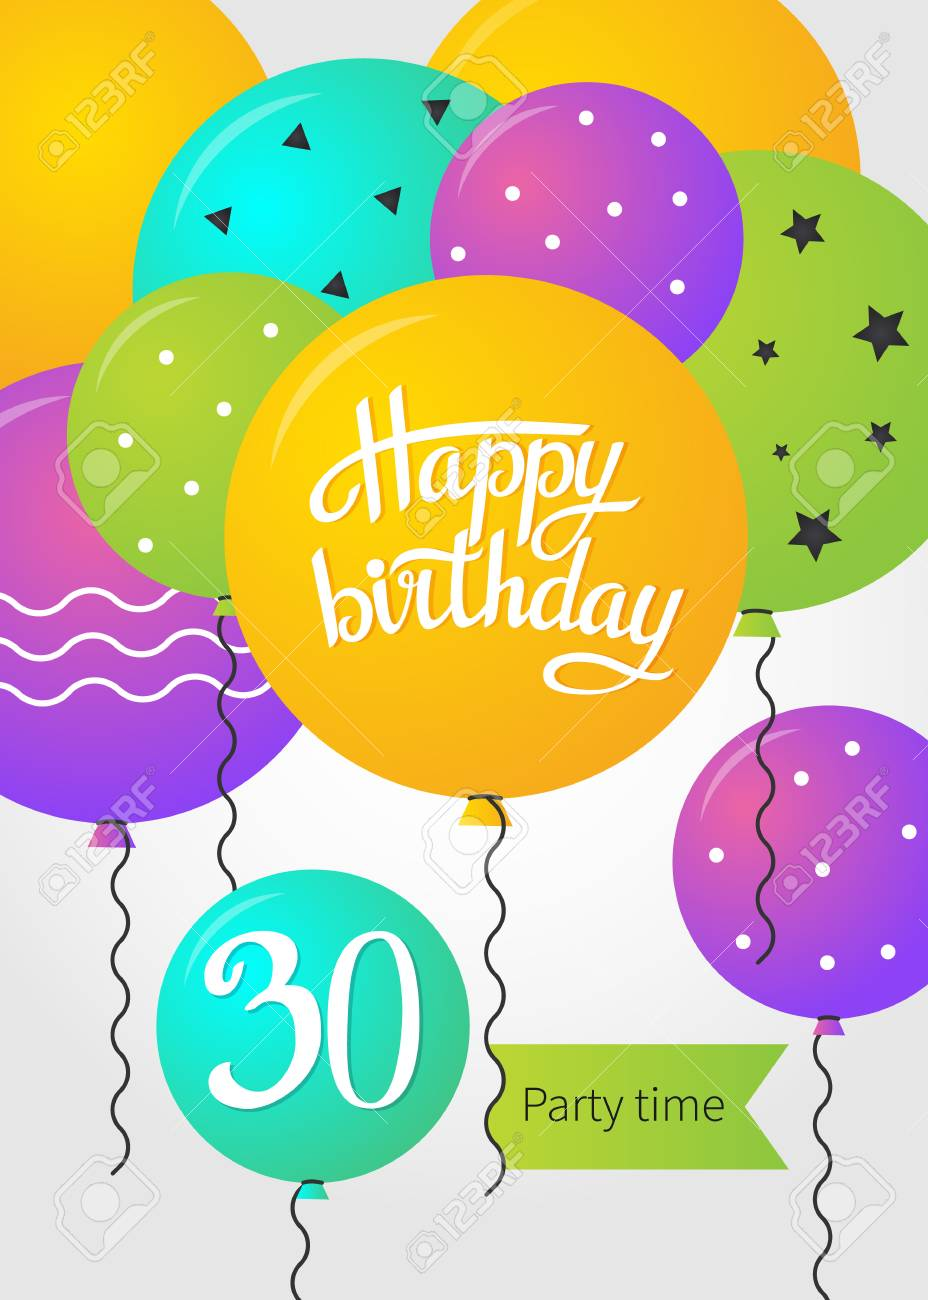 Happy Birthday Card Template With Balloons 30 Years Vector